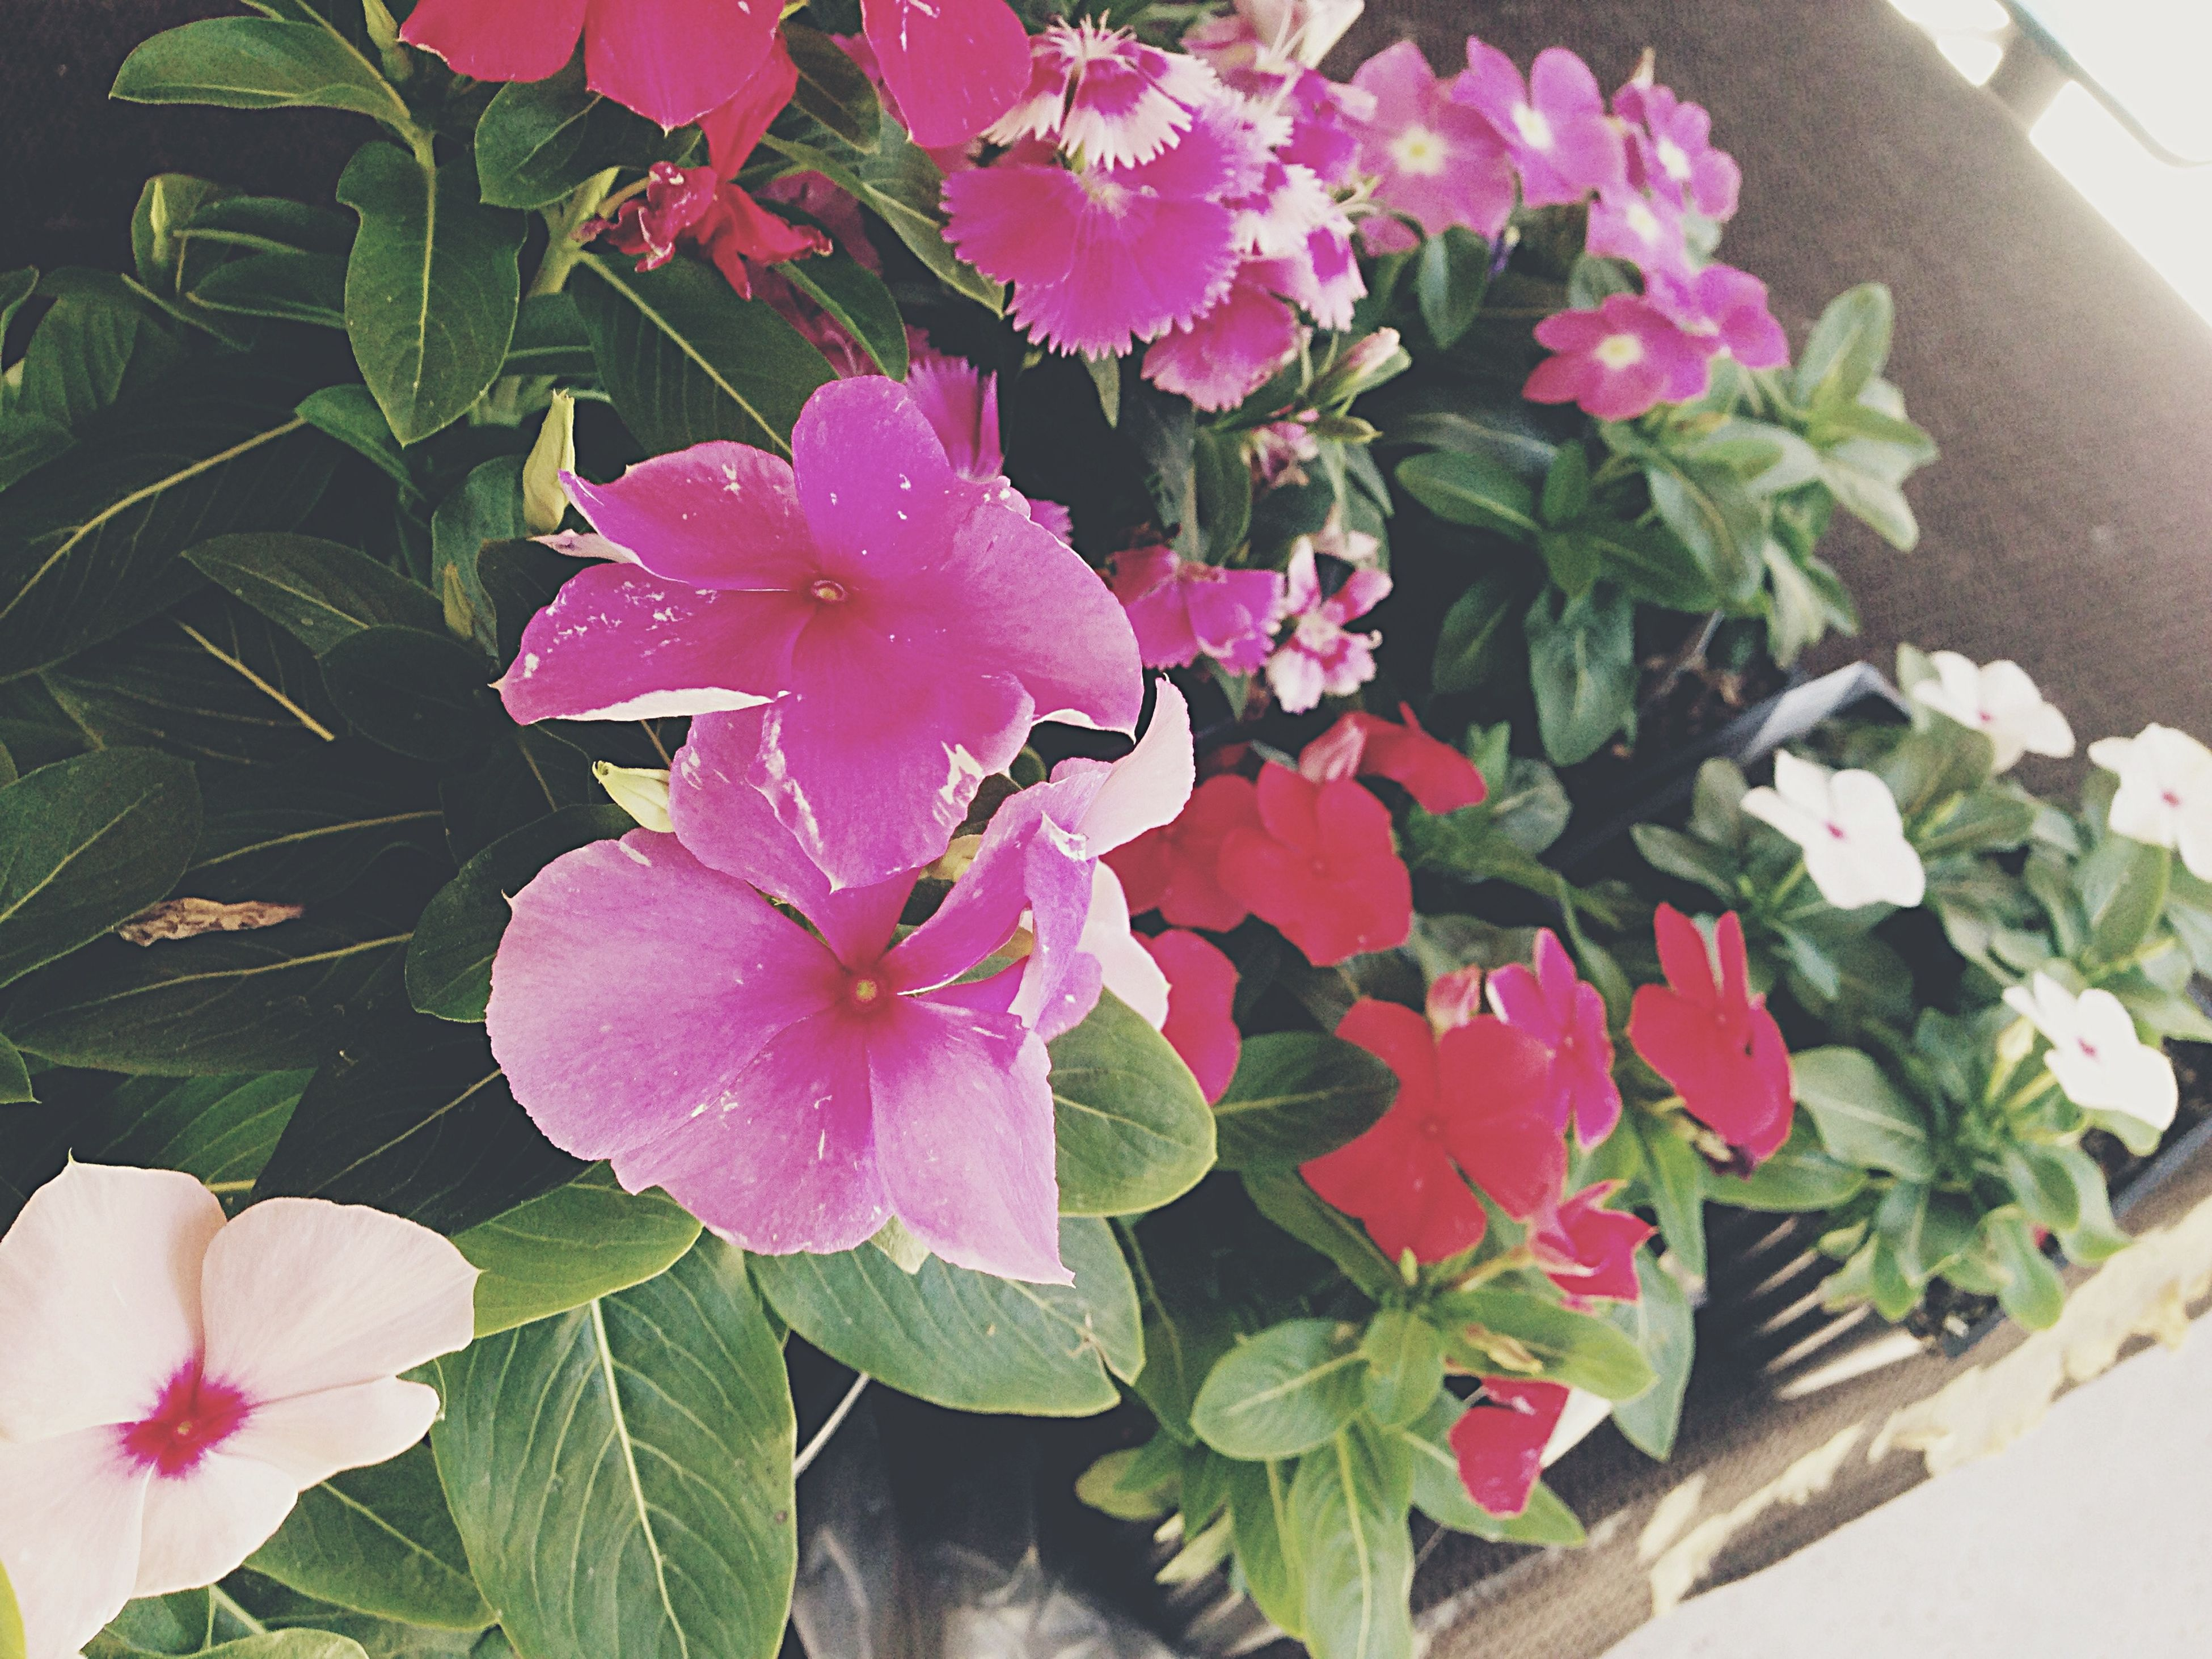 flower, petal, freshness, fragility, leaf, flower head, growth, pink color, beauty in nature, plant, high angle view, blooming, nature, close-up, day, outdoors, in bloom, no people, potted plant, front or back yard